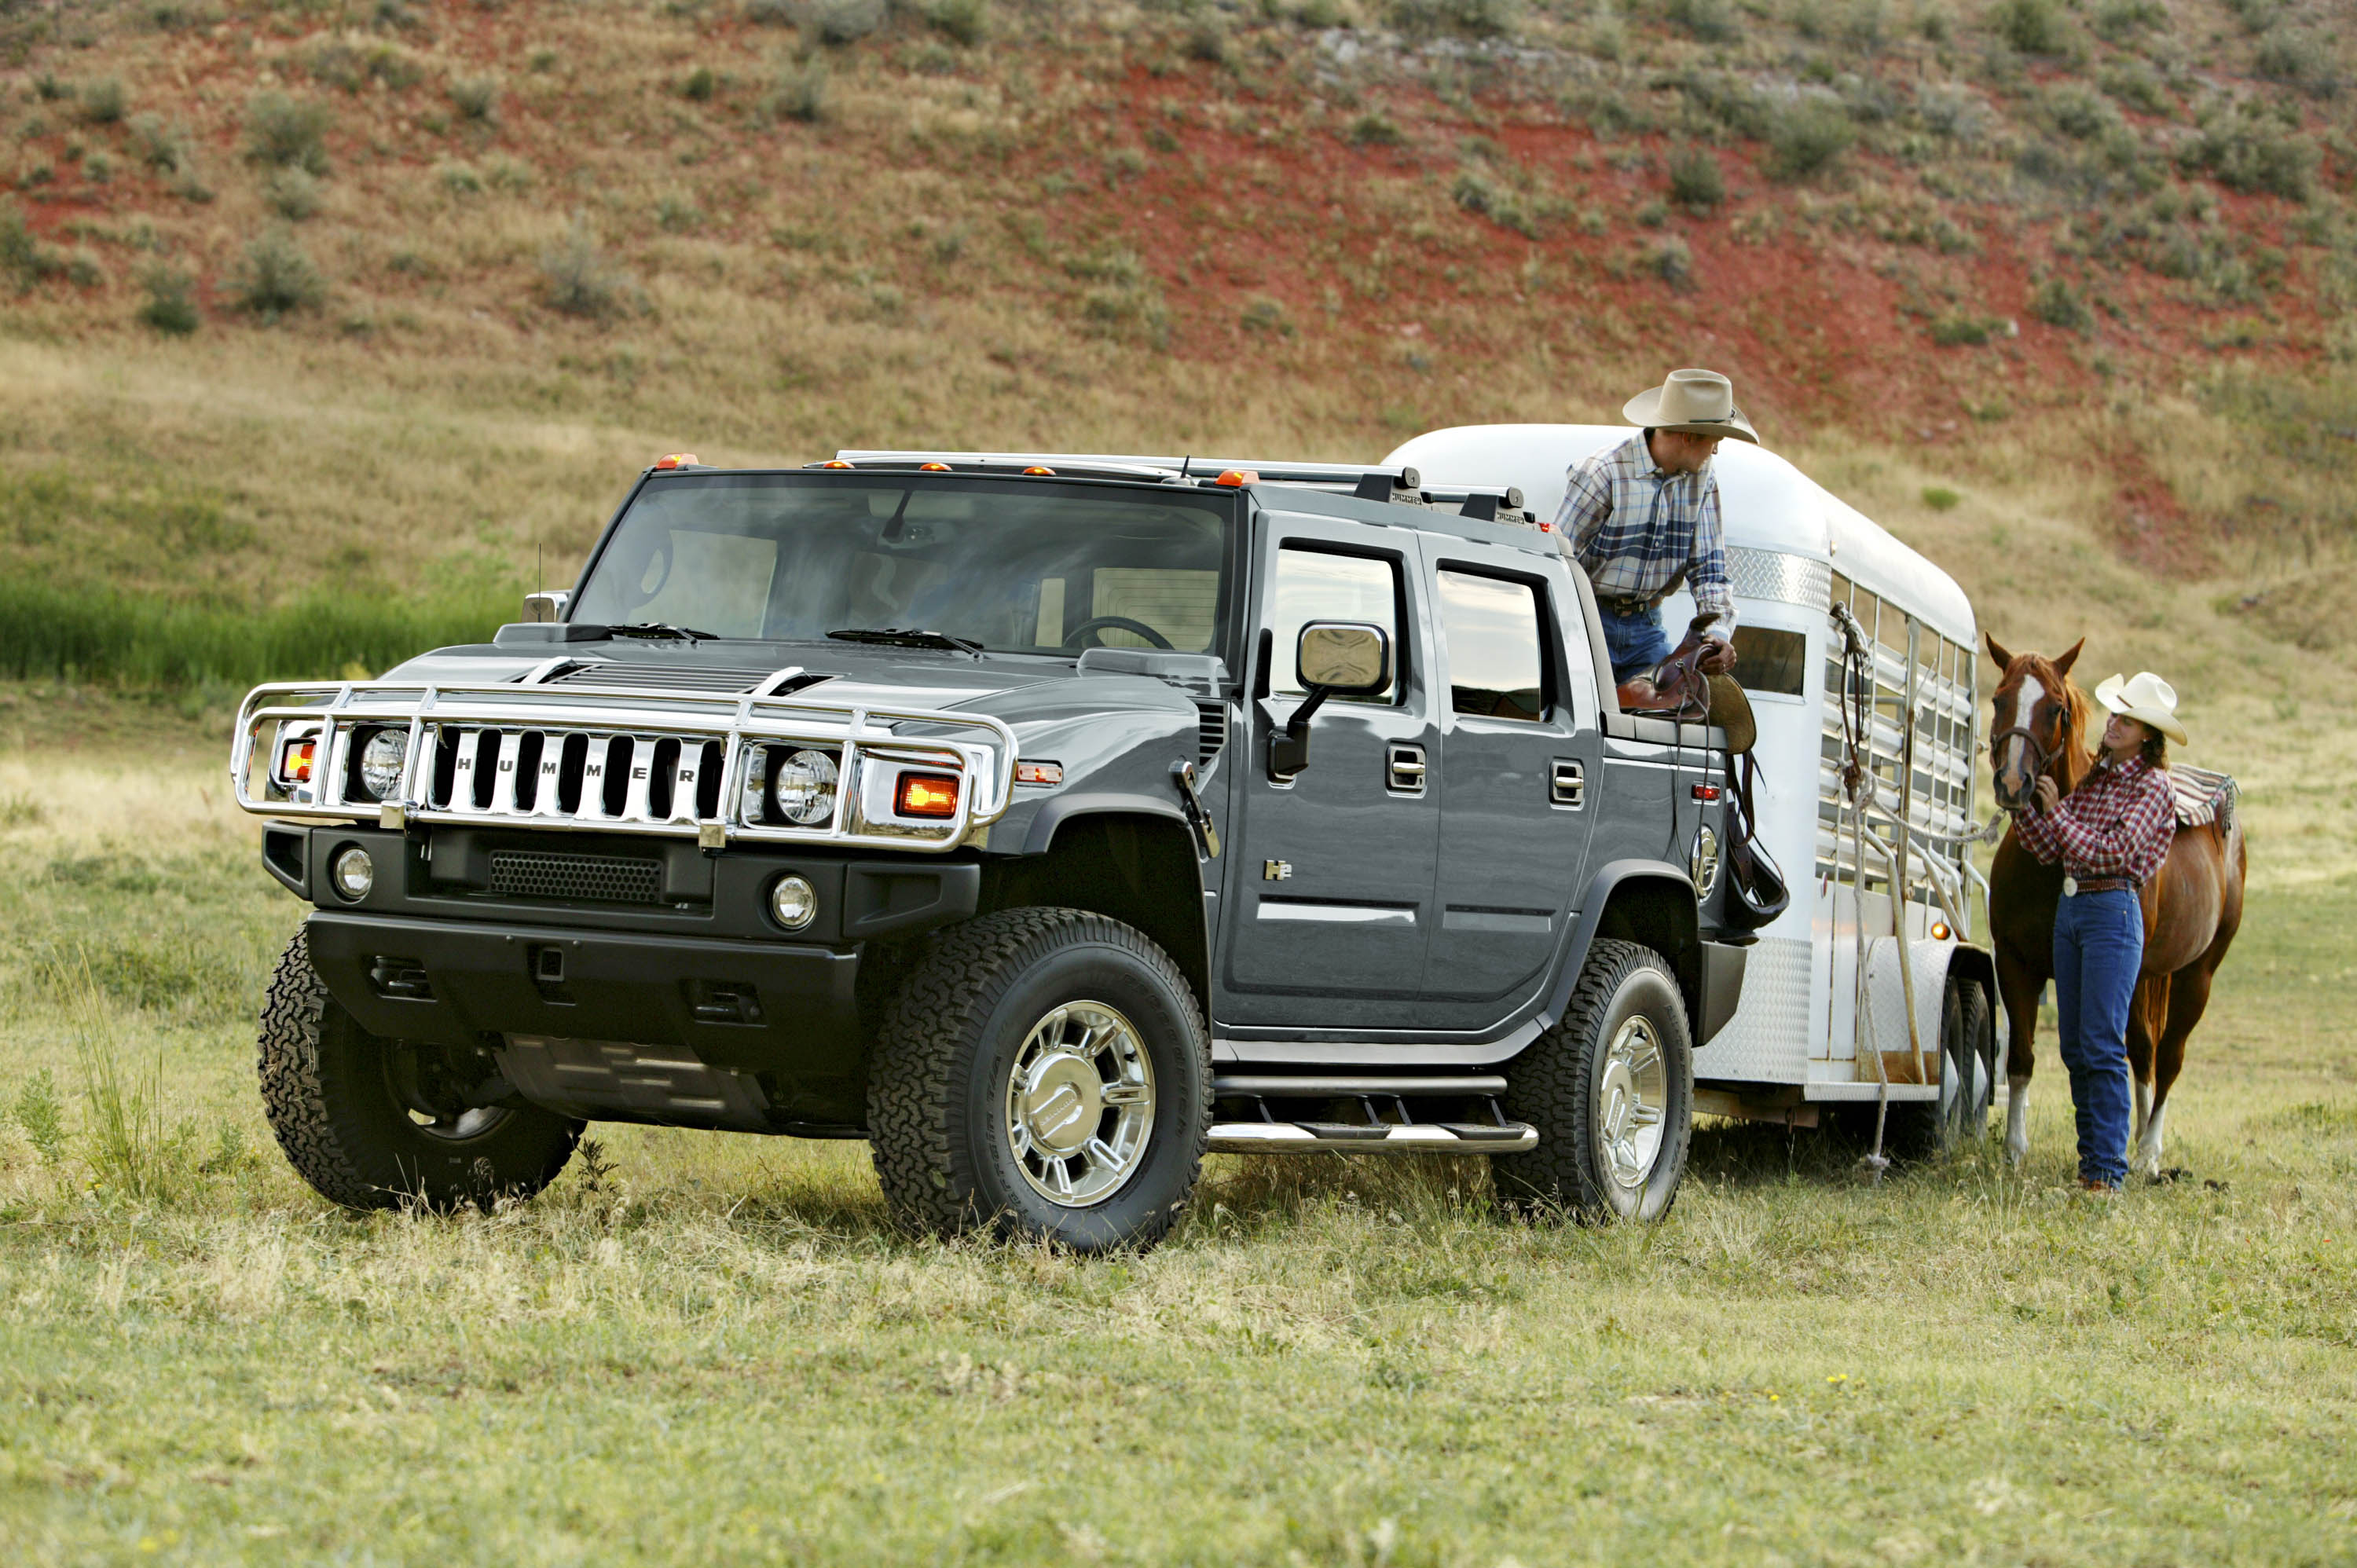 Hummer H2 Sut For Sale >> HUMMER H2 SUT -- All the capabil